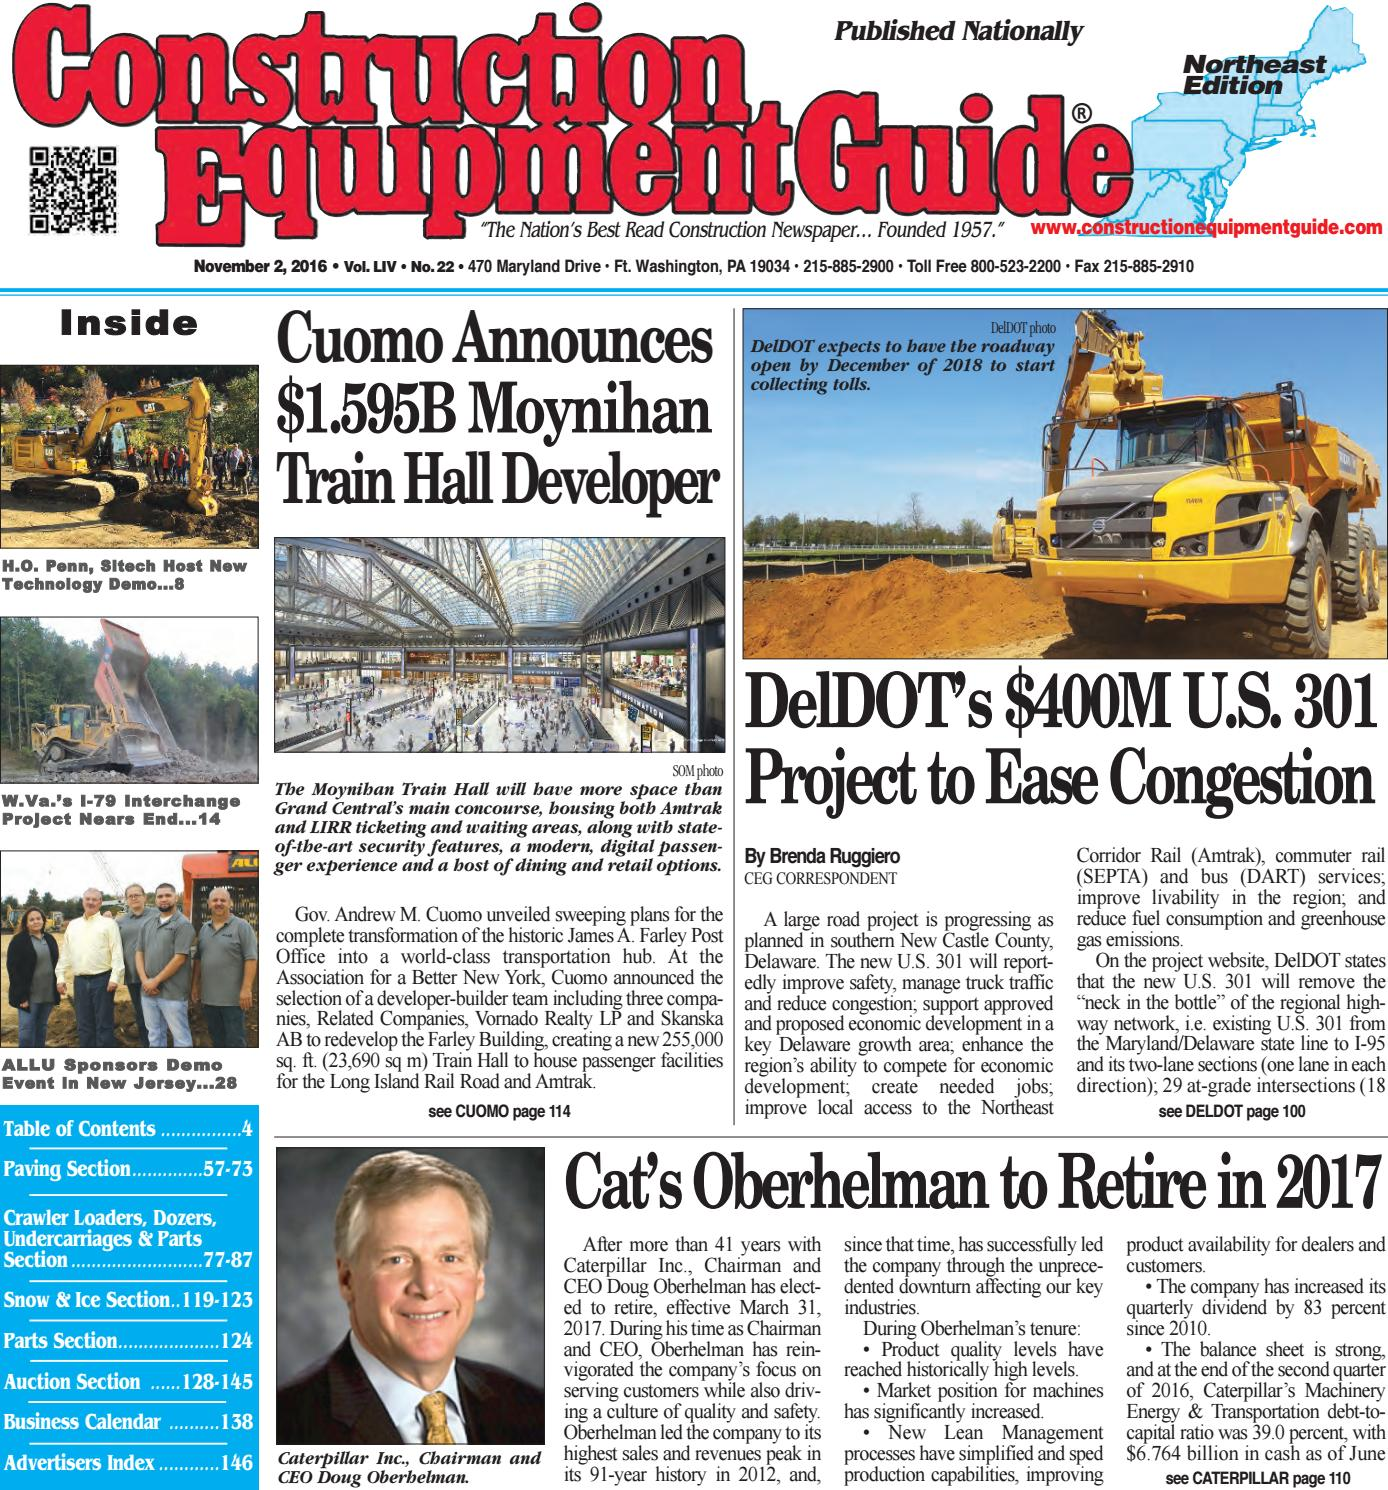 Northeast 22 November 2 2016 By Construction Equipment Guide Issuu Door Closure Wiring Diagram 279c Cat